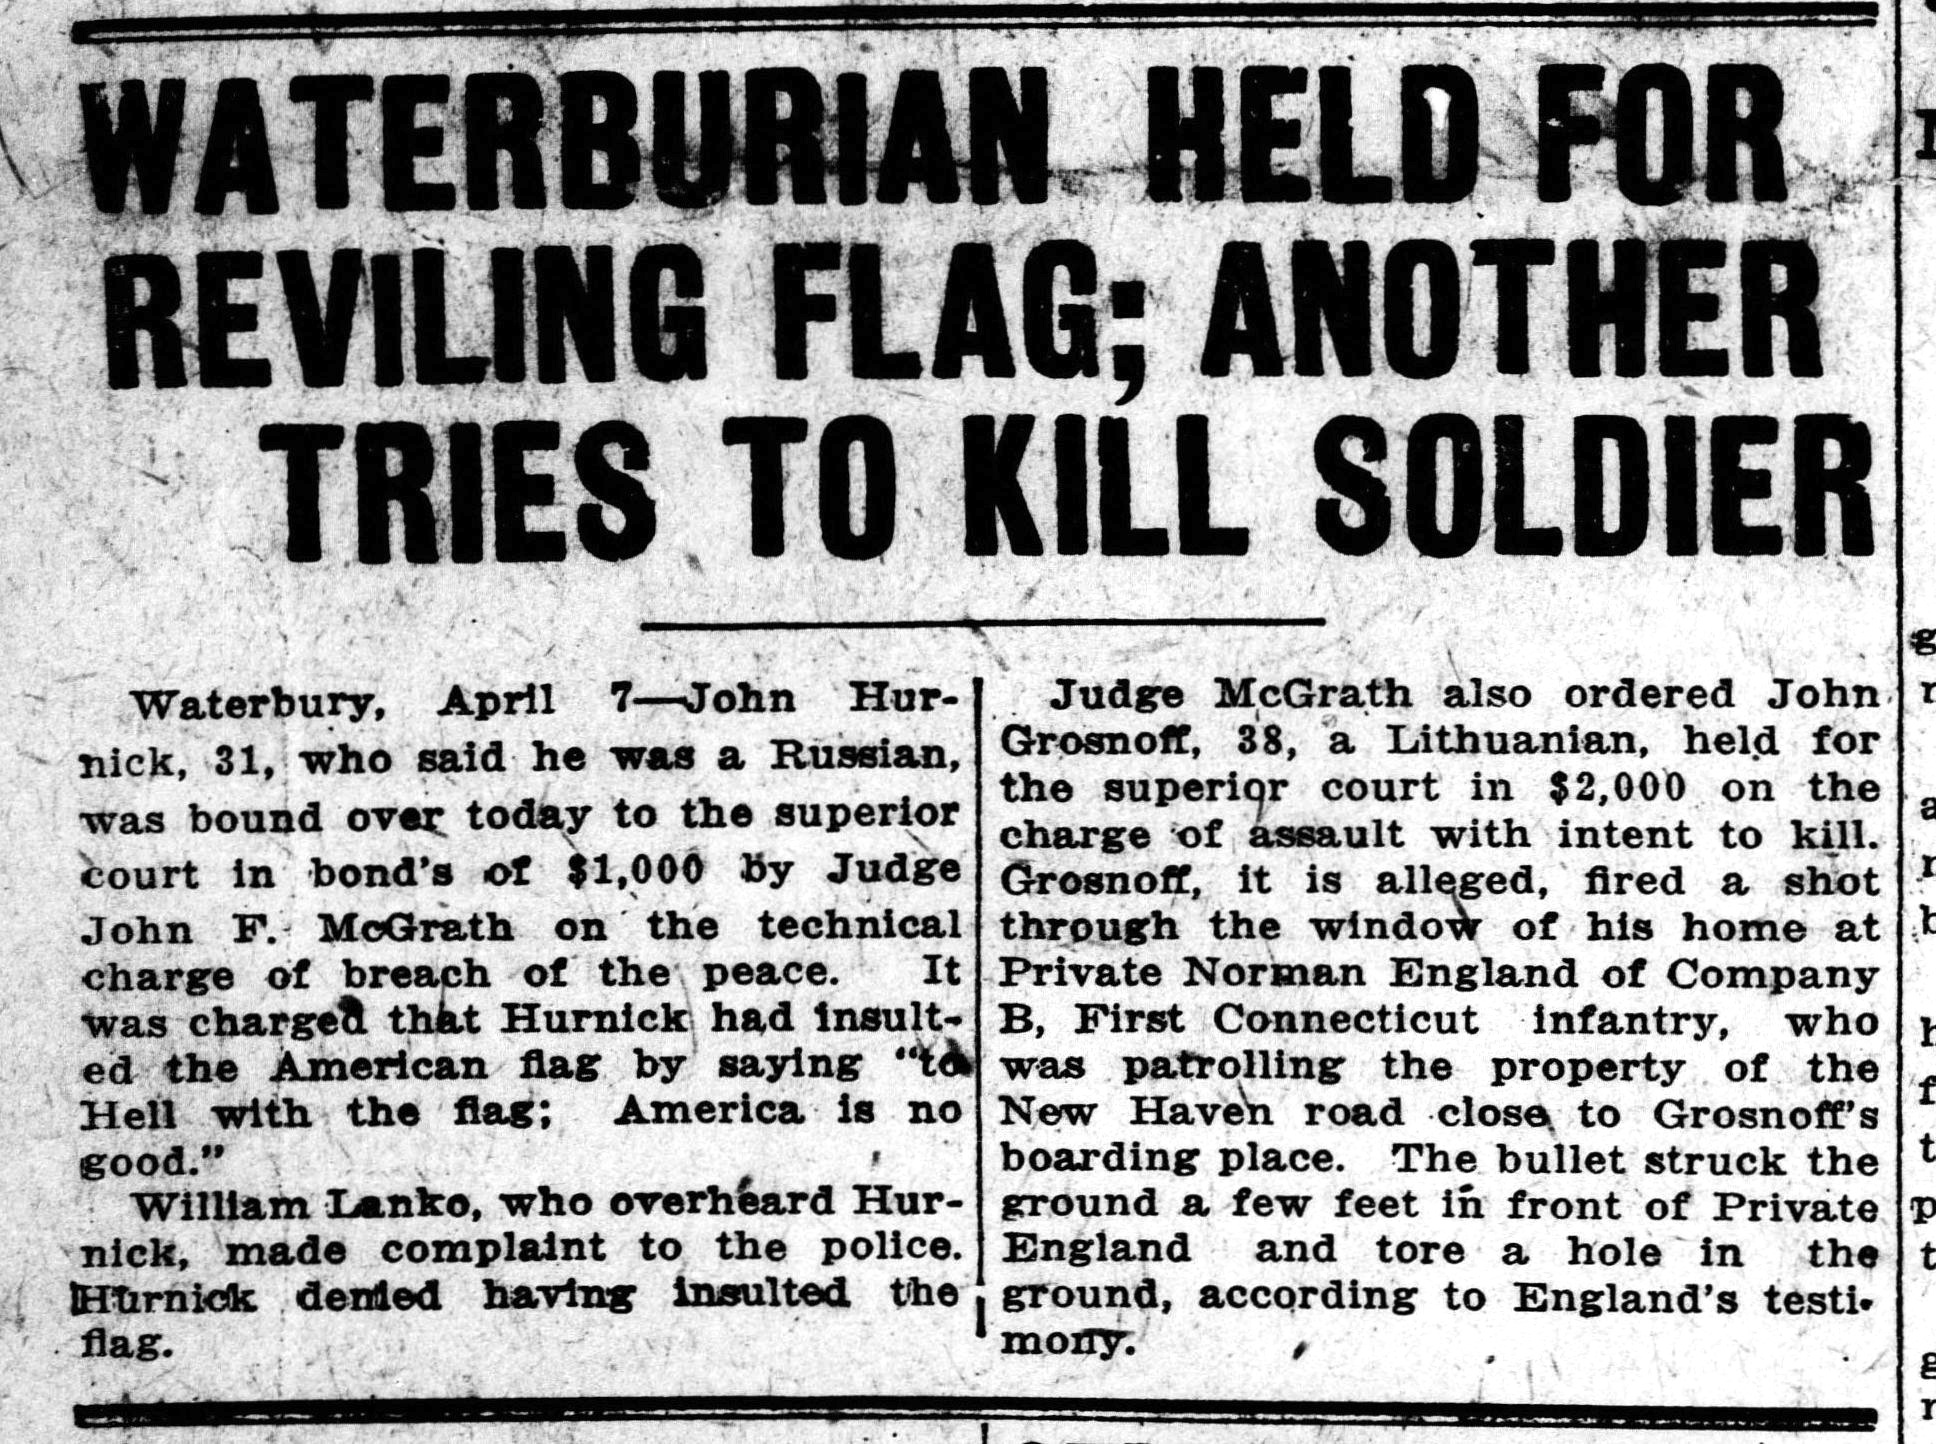 Waterburian Held for Reviling Flag; Another Tries to Kill Soldier